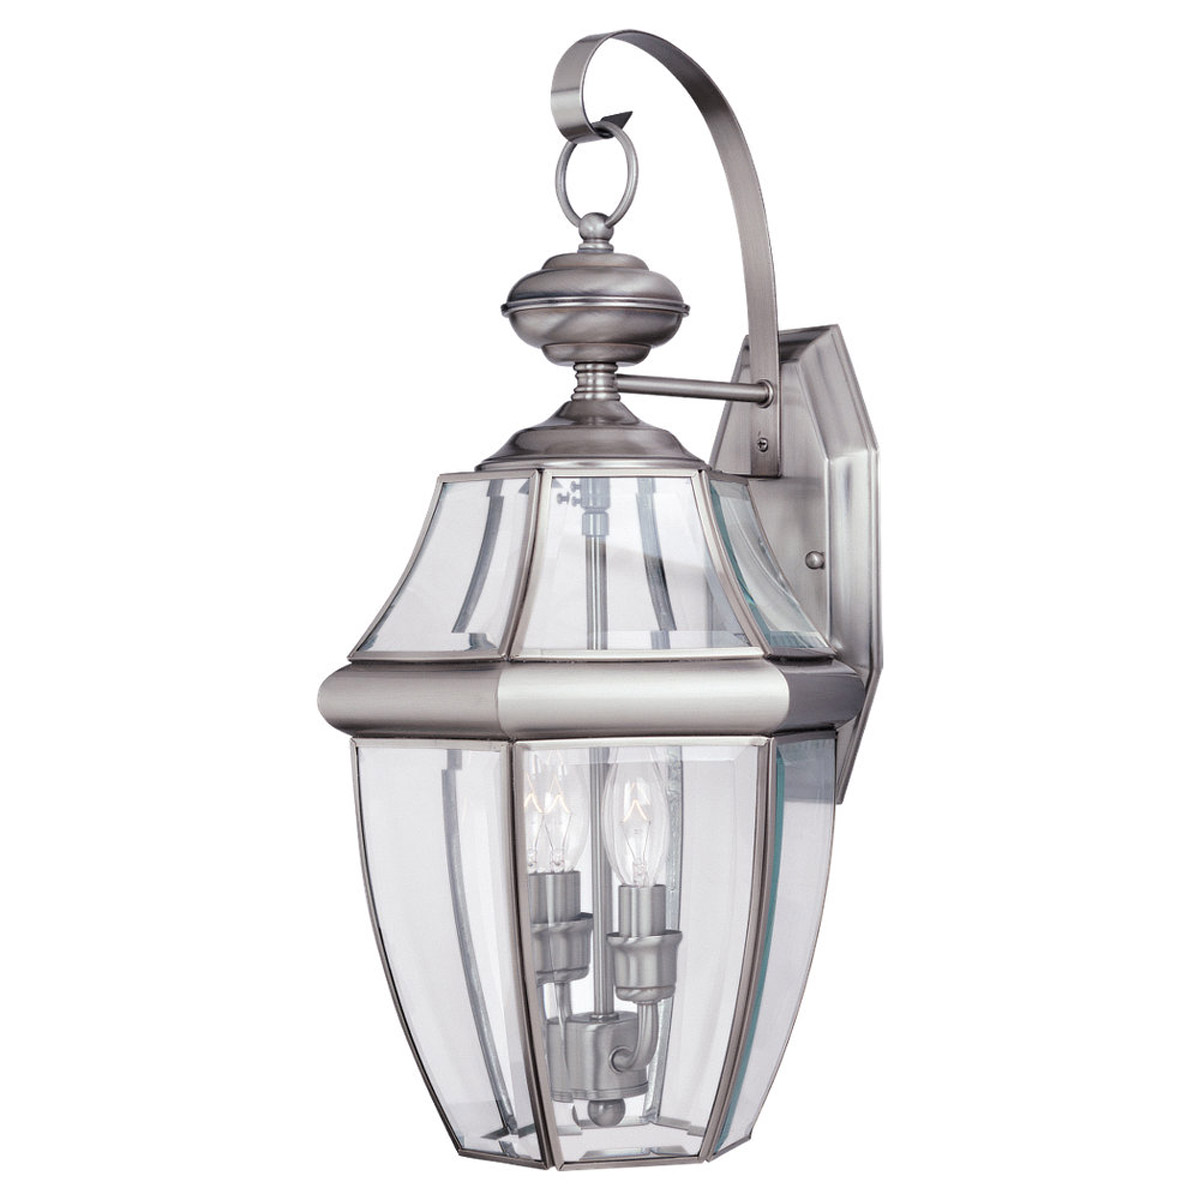 Sea Gull Lighting Lancaster 2 Light Outdoor Wall Lantern in Antique Brushed Nickel 8039-965 photo